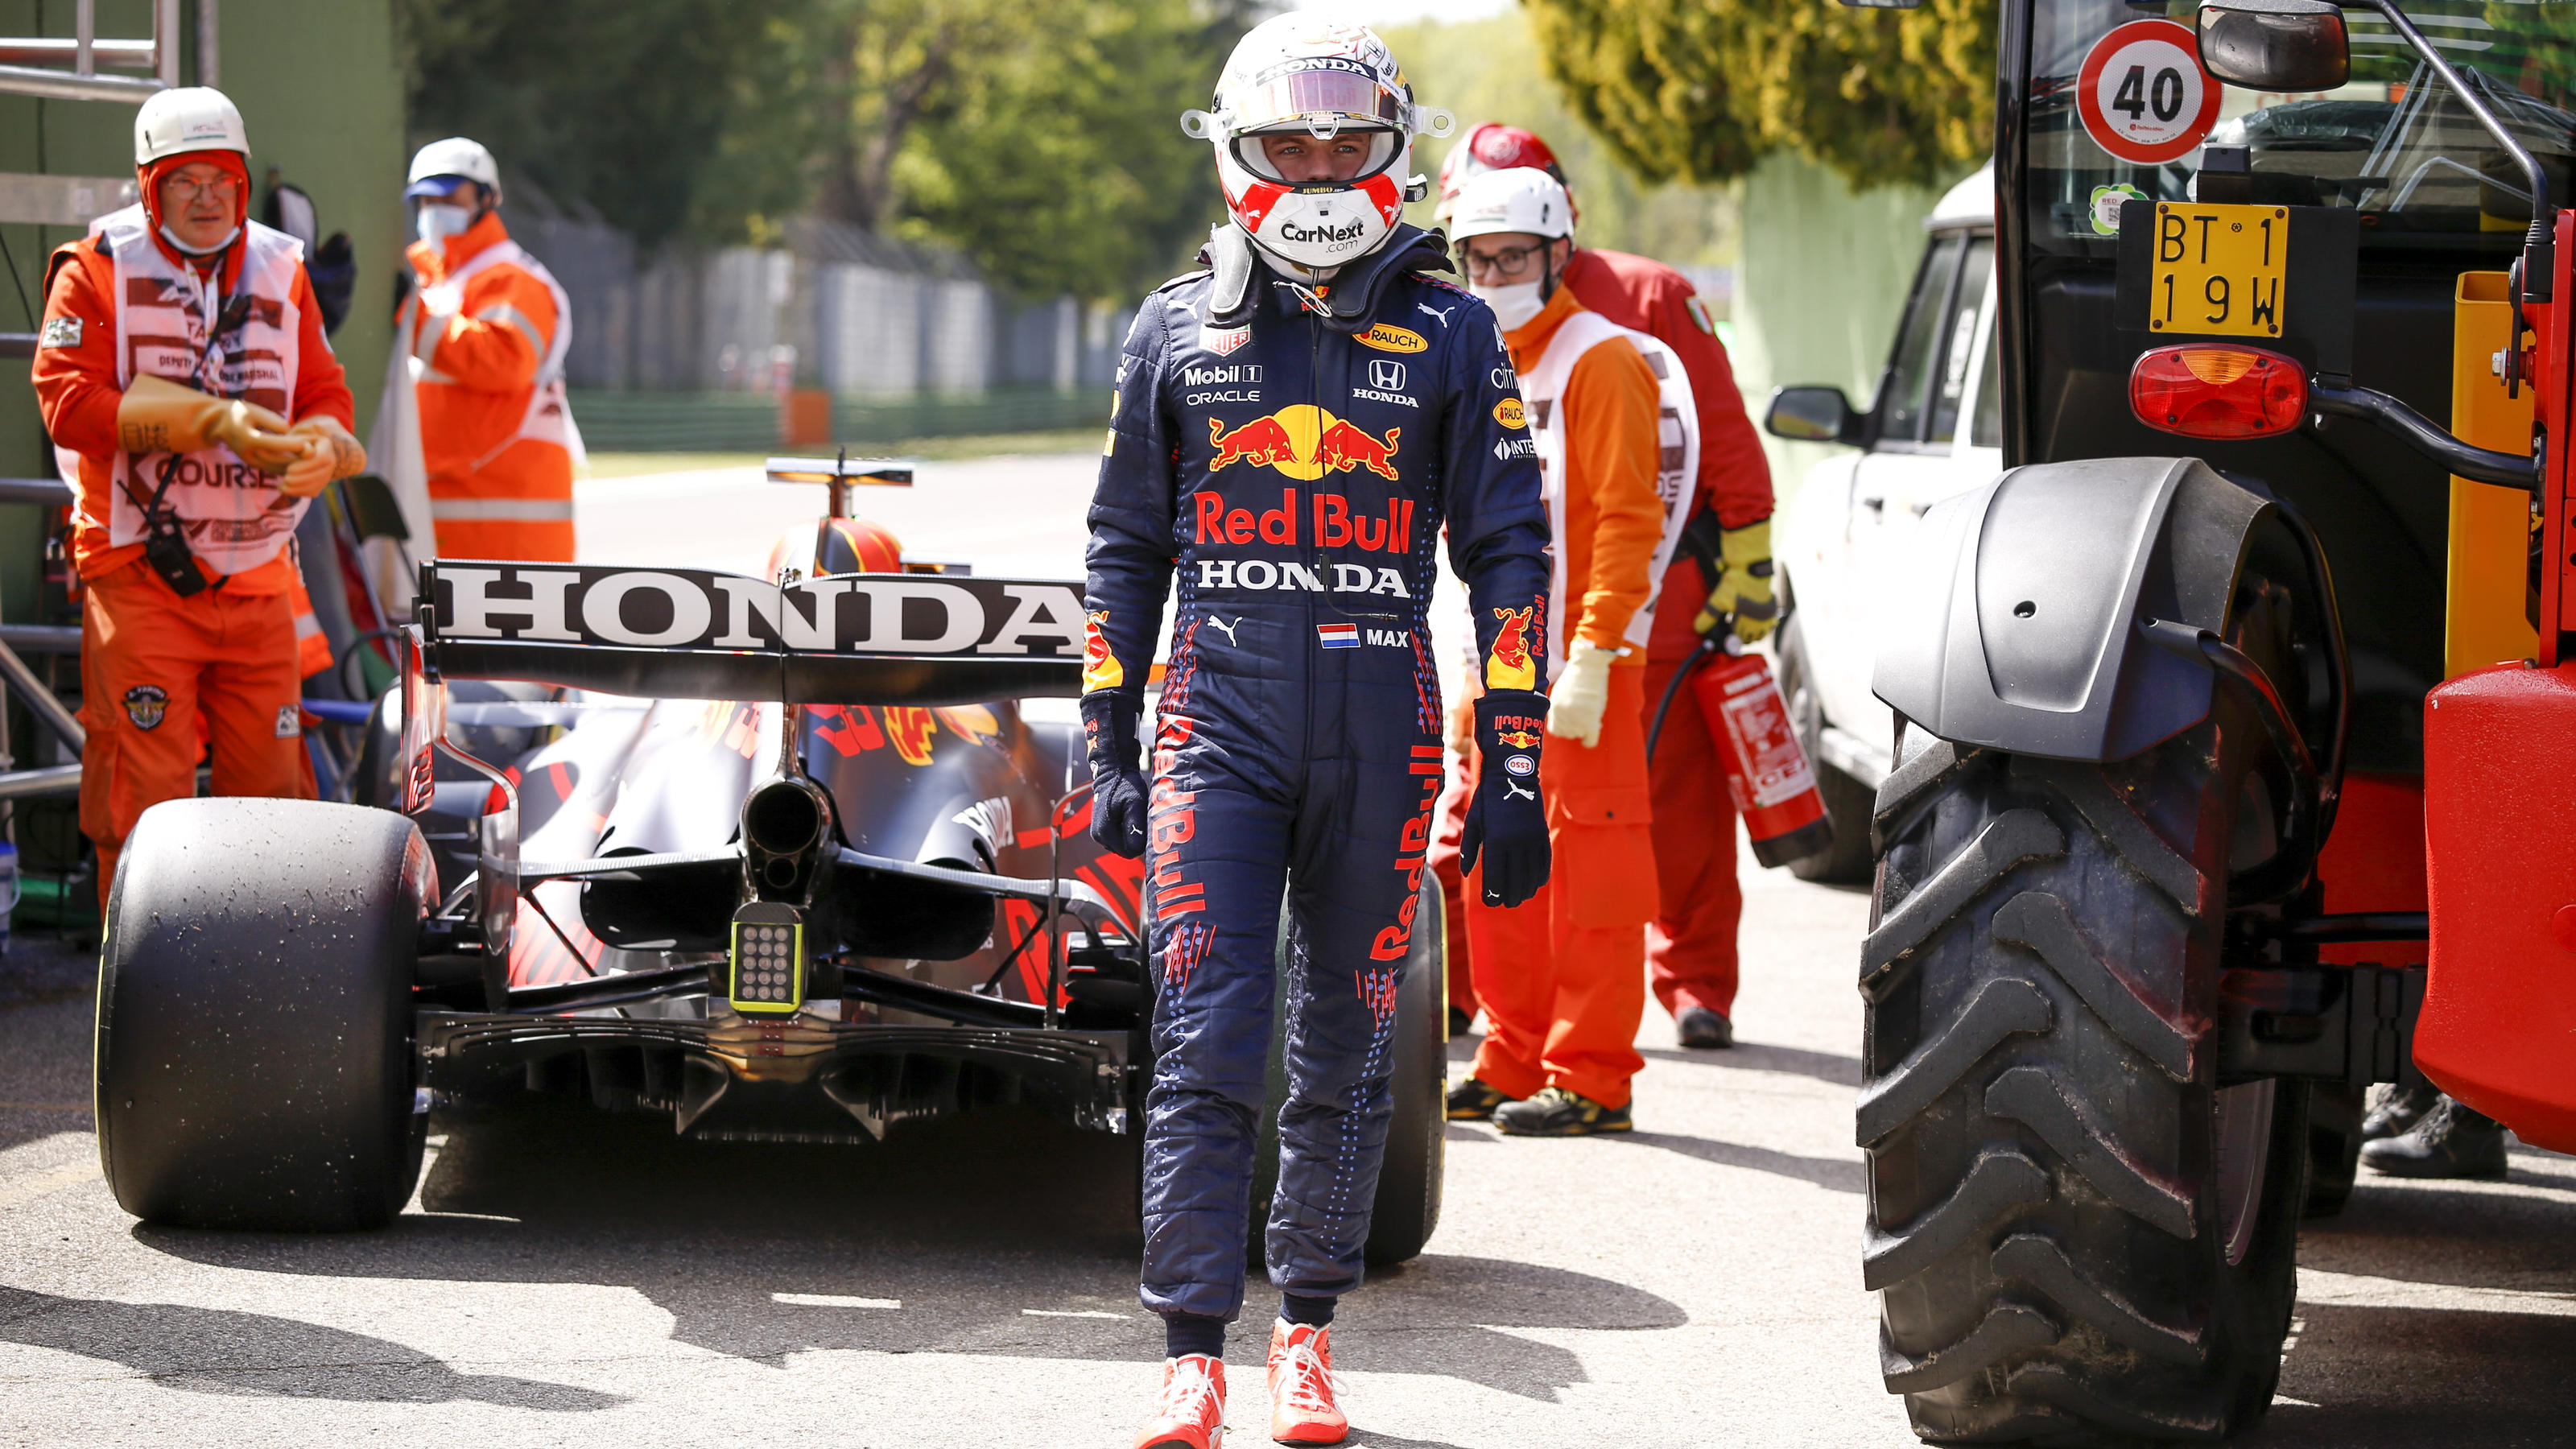 Formel 1 in Imola: Red Bull erlebt Trainings-Desaster